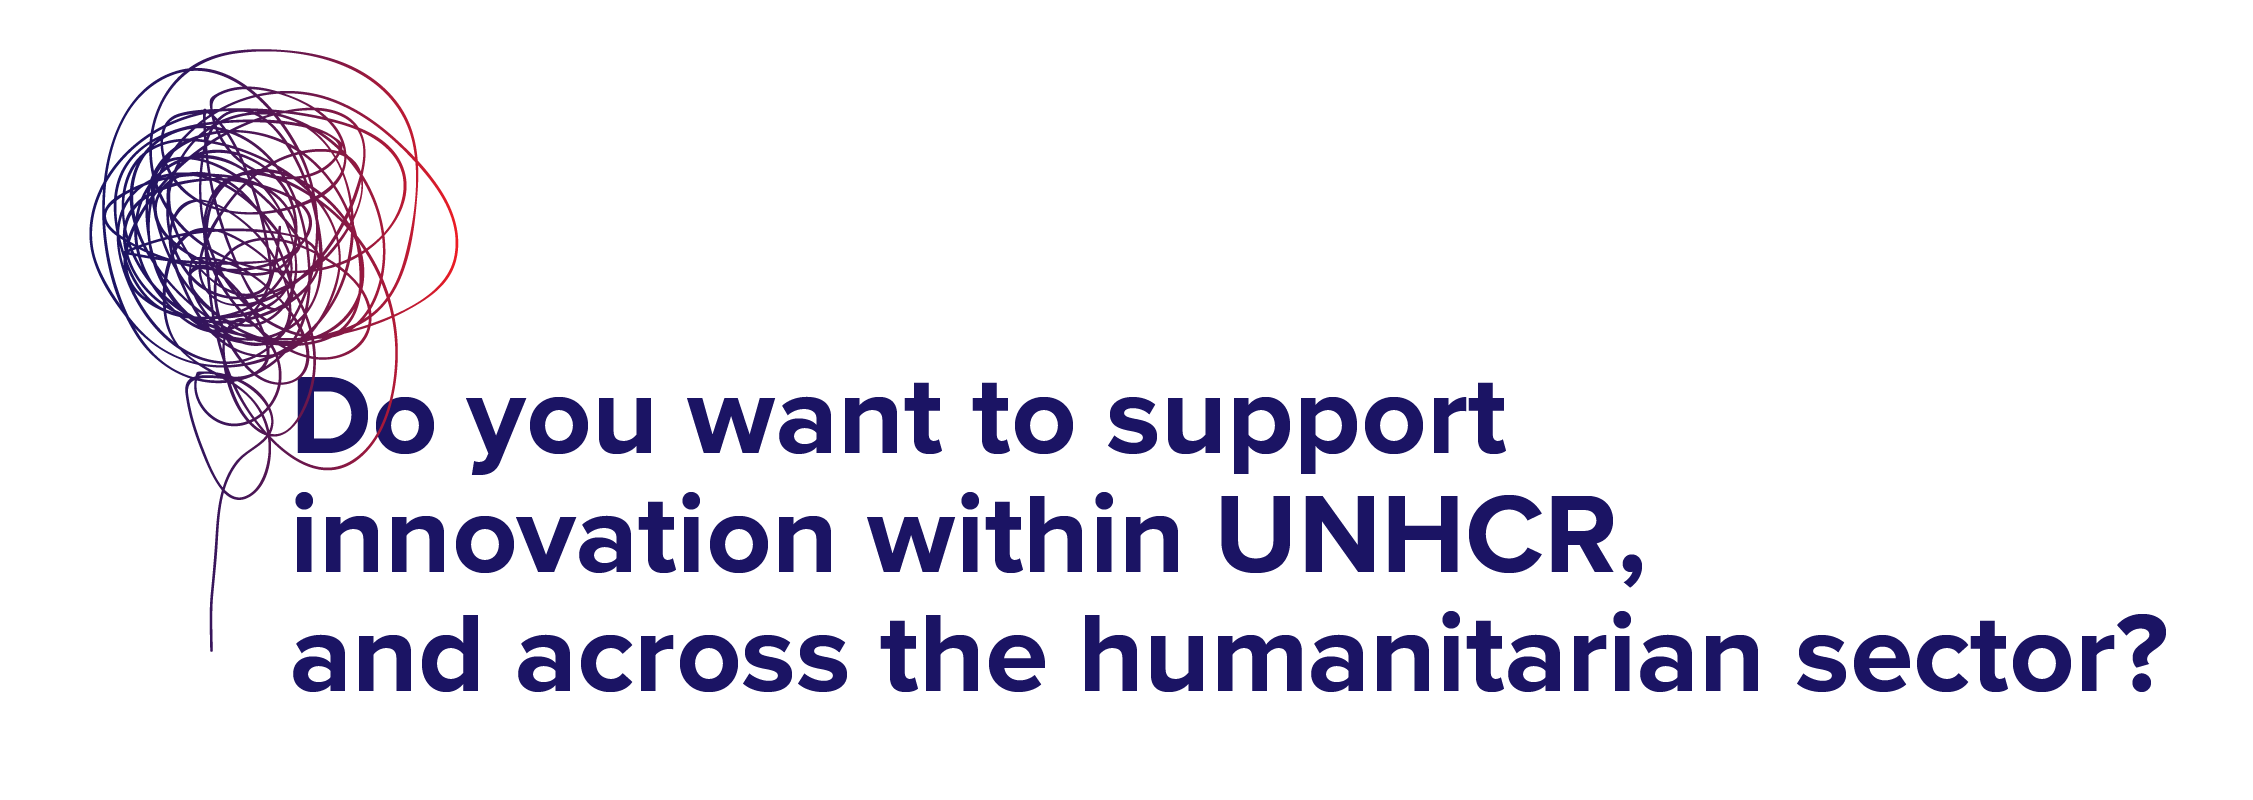 Unhcr innovation service innovation starts with people regardless if youre a refugee or a unhcr staff member we want to help you create an enabling environment for innovation and continuous learning altavistaventures Gallery